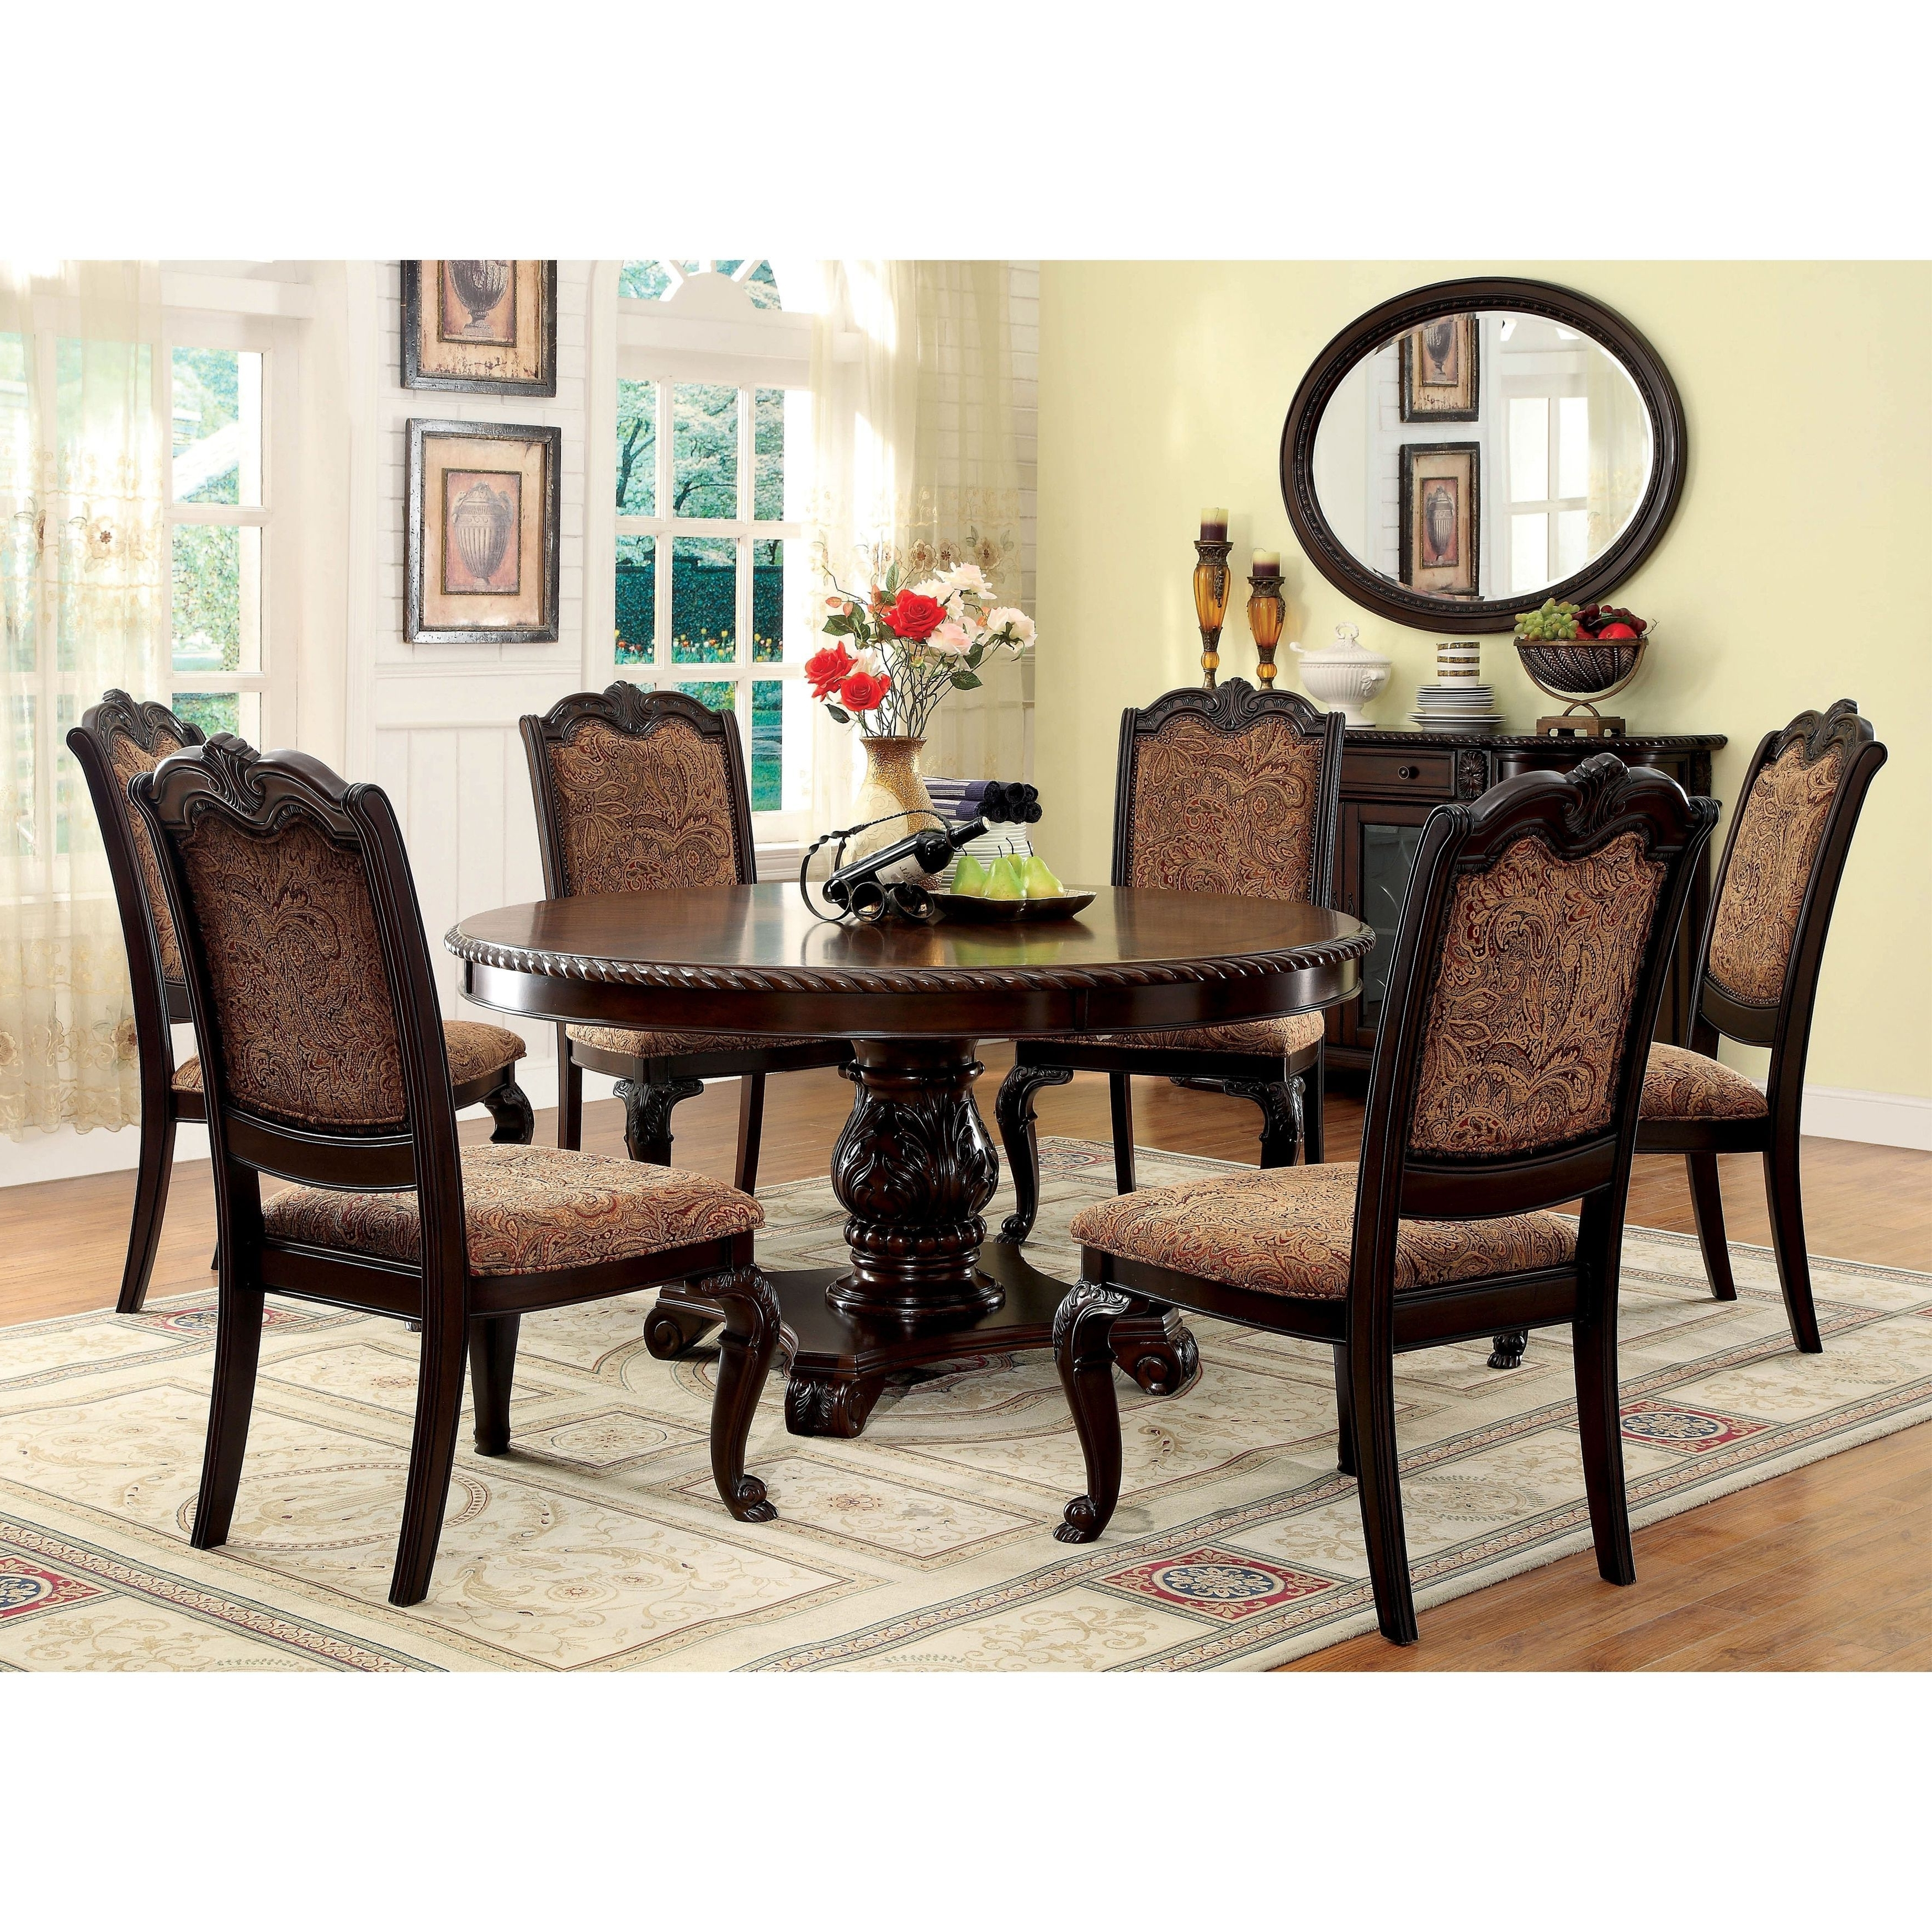 Furniture Of America Oskarre Iii Brown Cherry (Red) 7 Piece Formal Within Current Valencia 72 Inch 7 Piece Dining Sets (View 7 of 25)